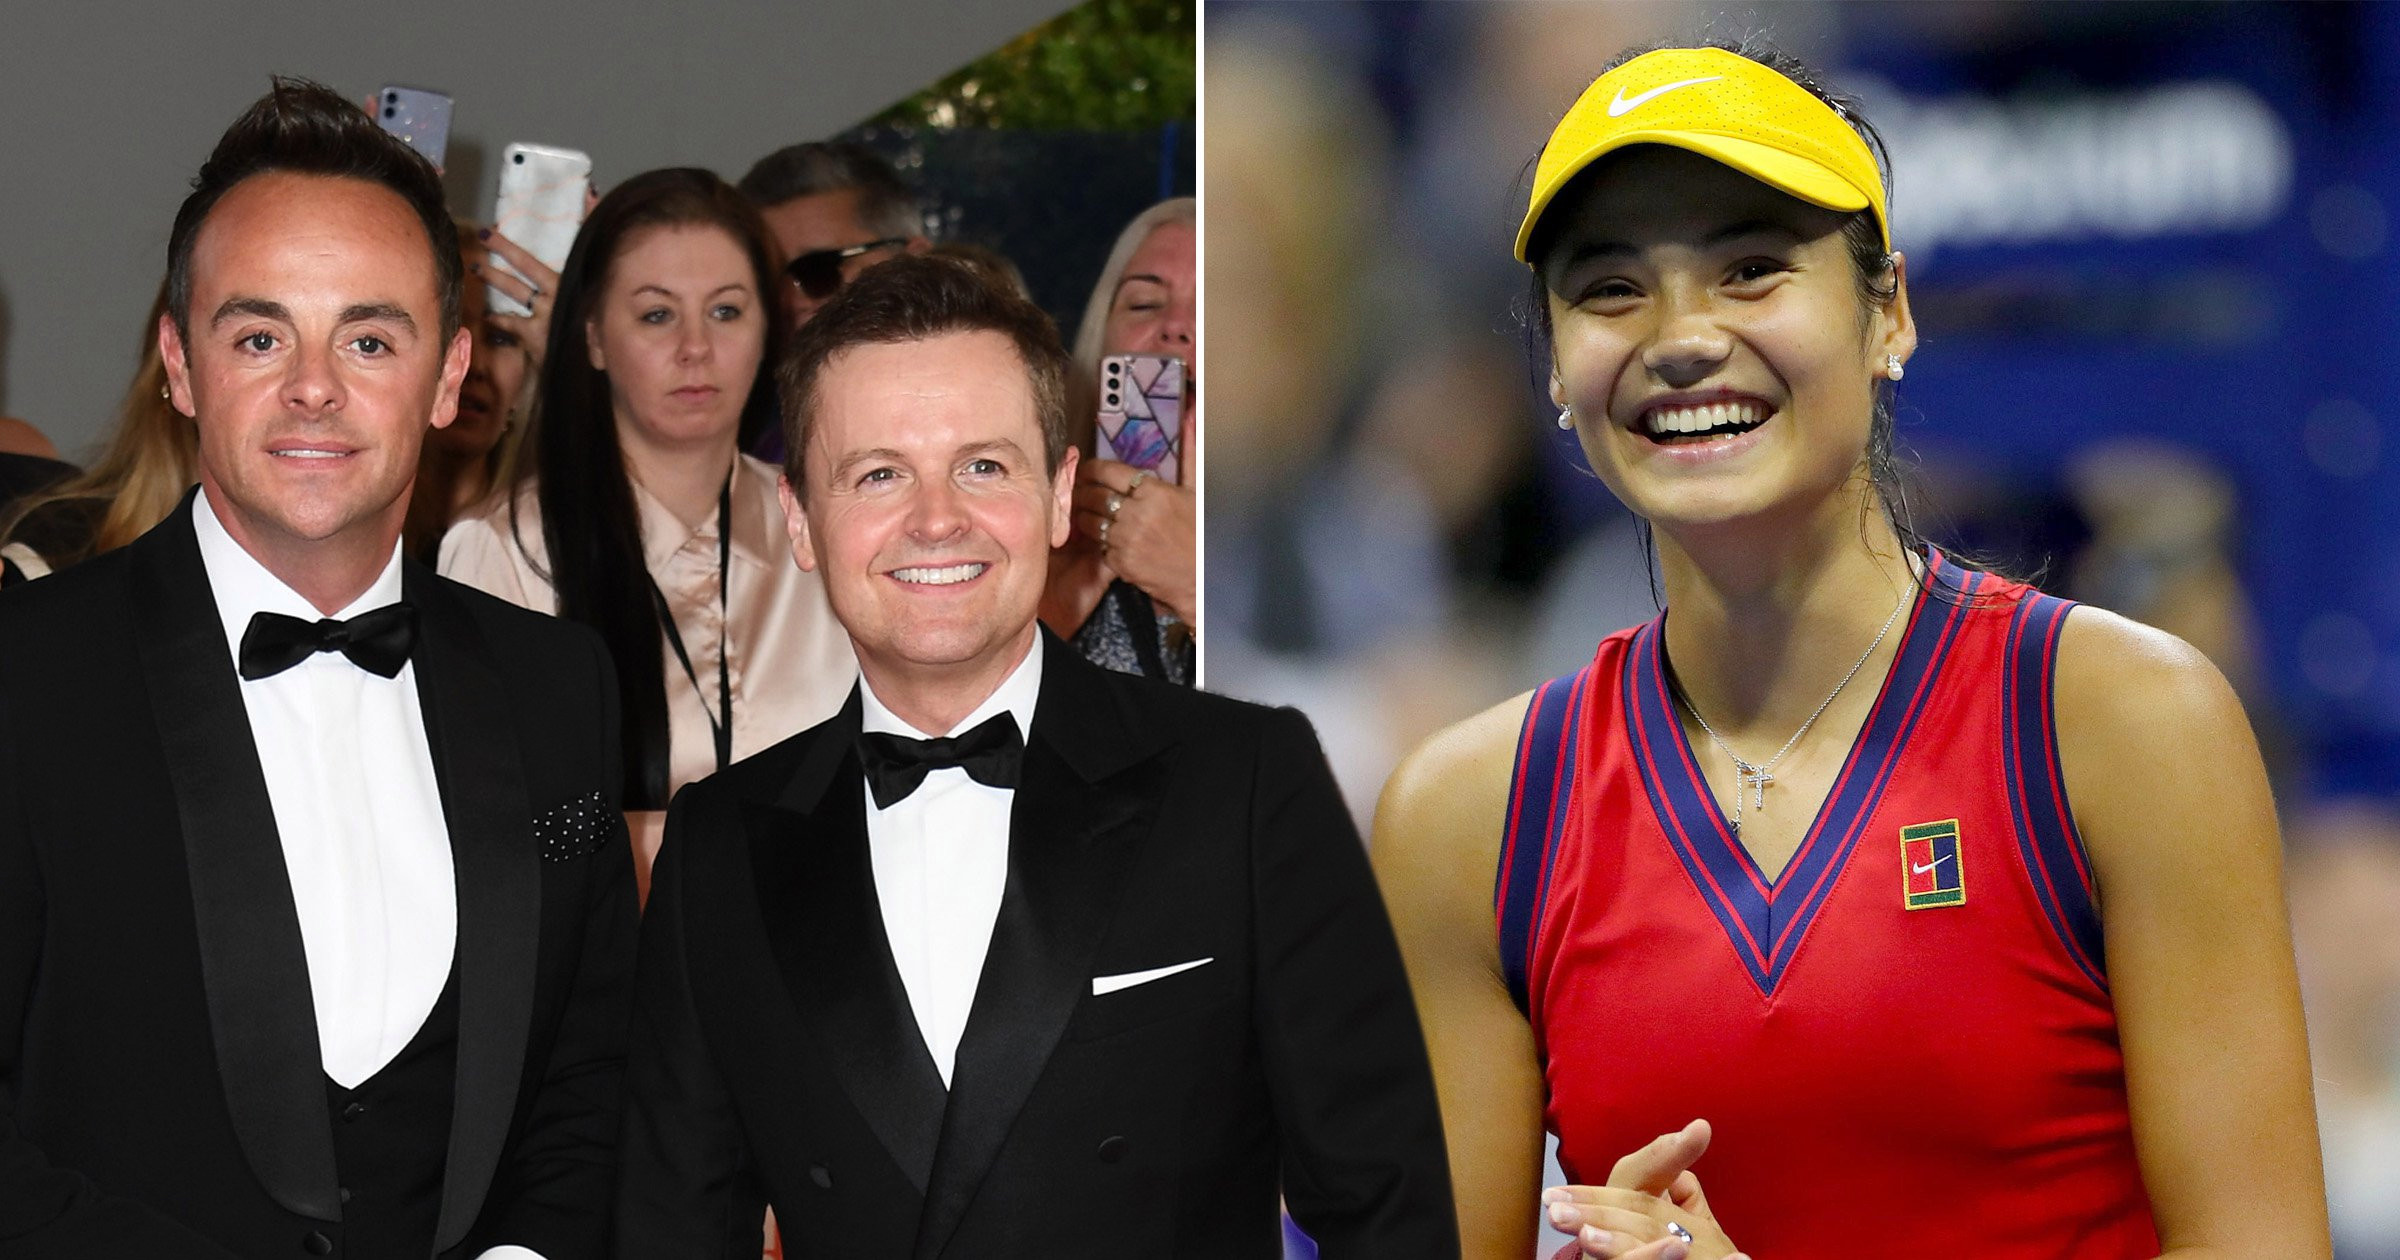 Ant and Dec lead stars cheering on Emma Raducanu as tennis star heads for US Open final